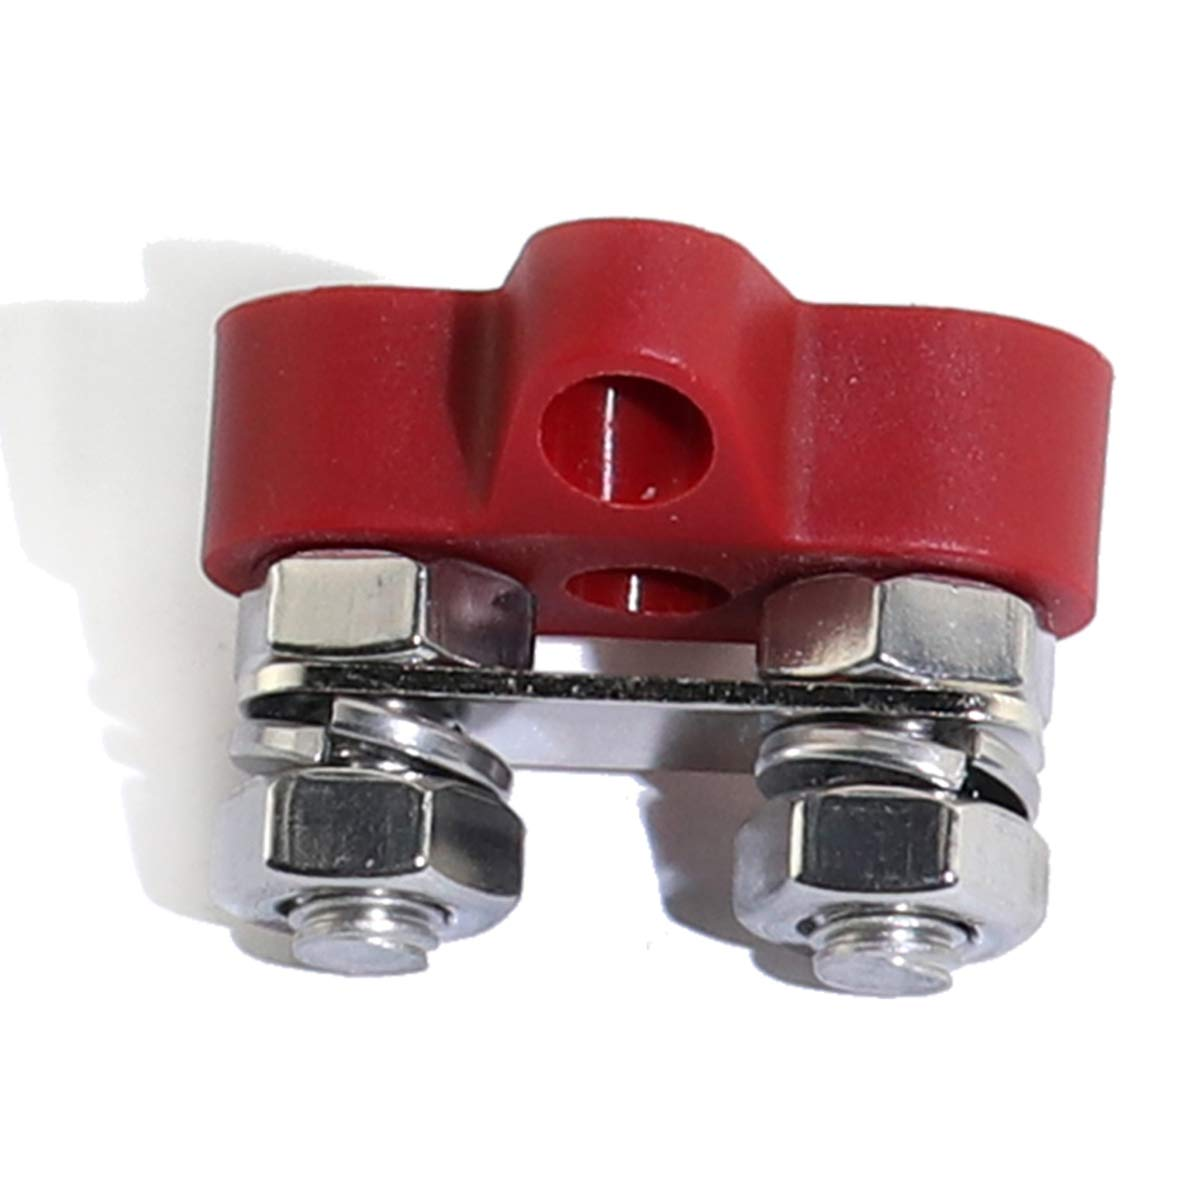 Boeray Dual Heavy-Duty Terminal Studs with Connecting Bus Bar Power Terminal Blocks Link Negative M6 M6 Positive Power Distribution Studs